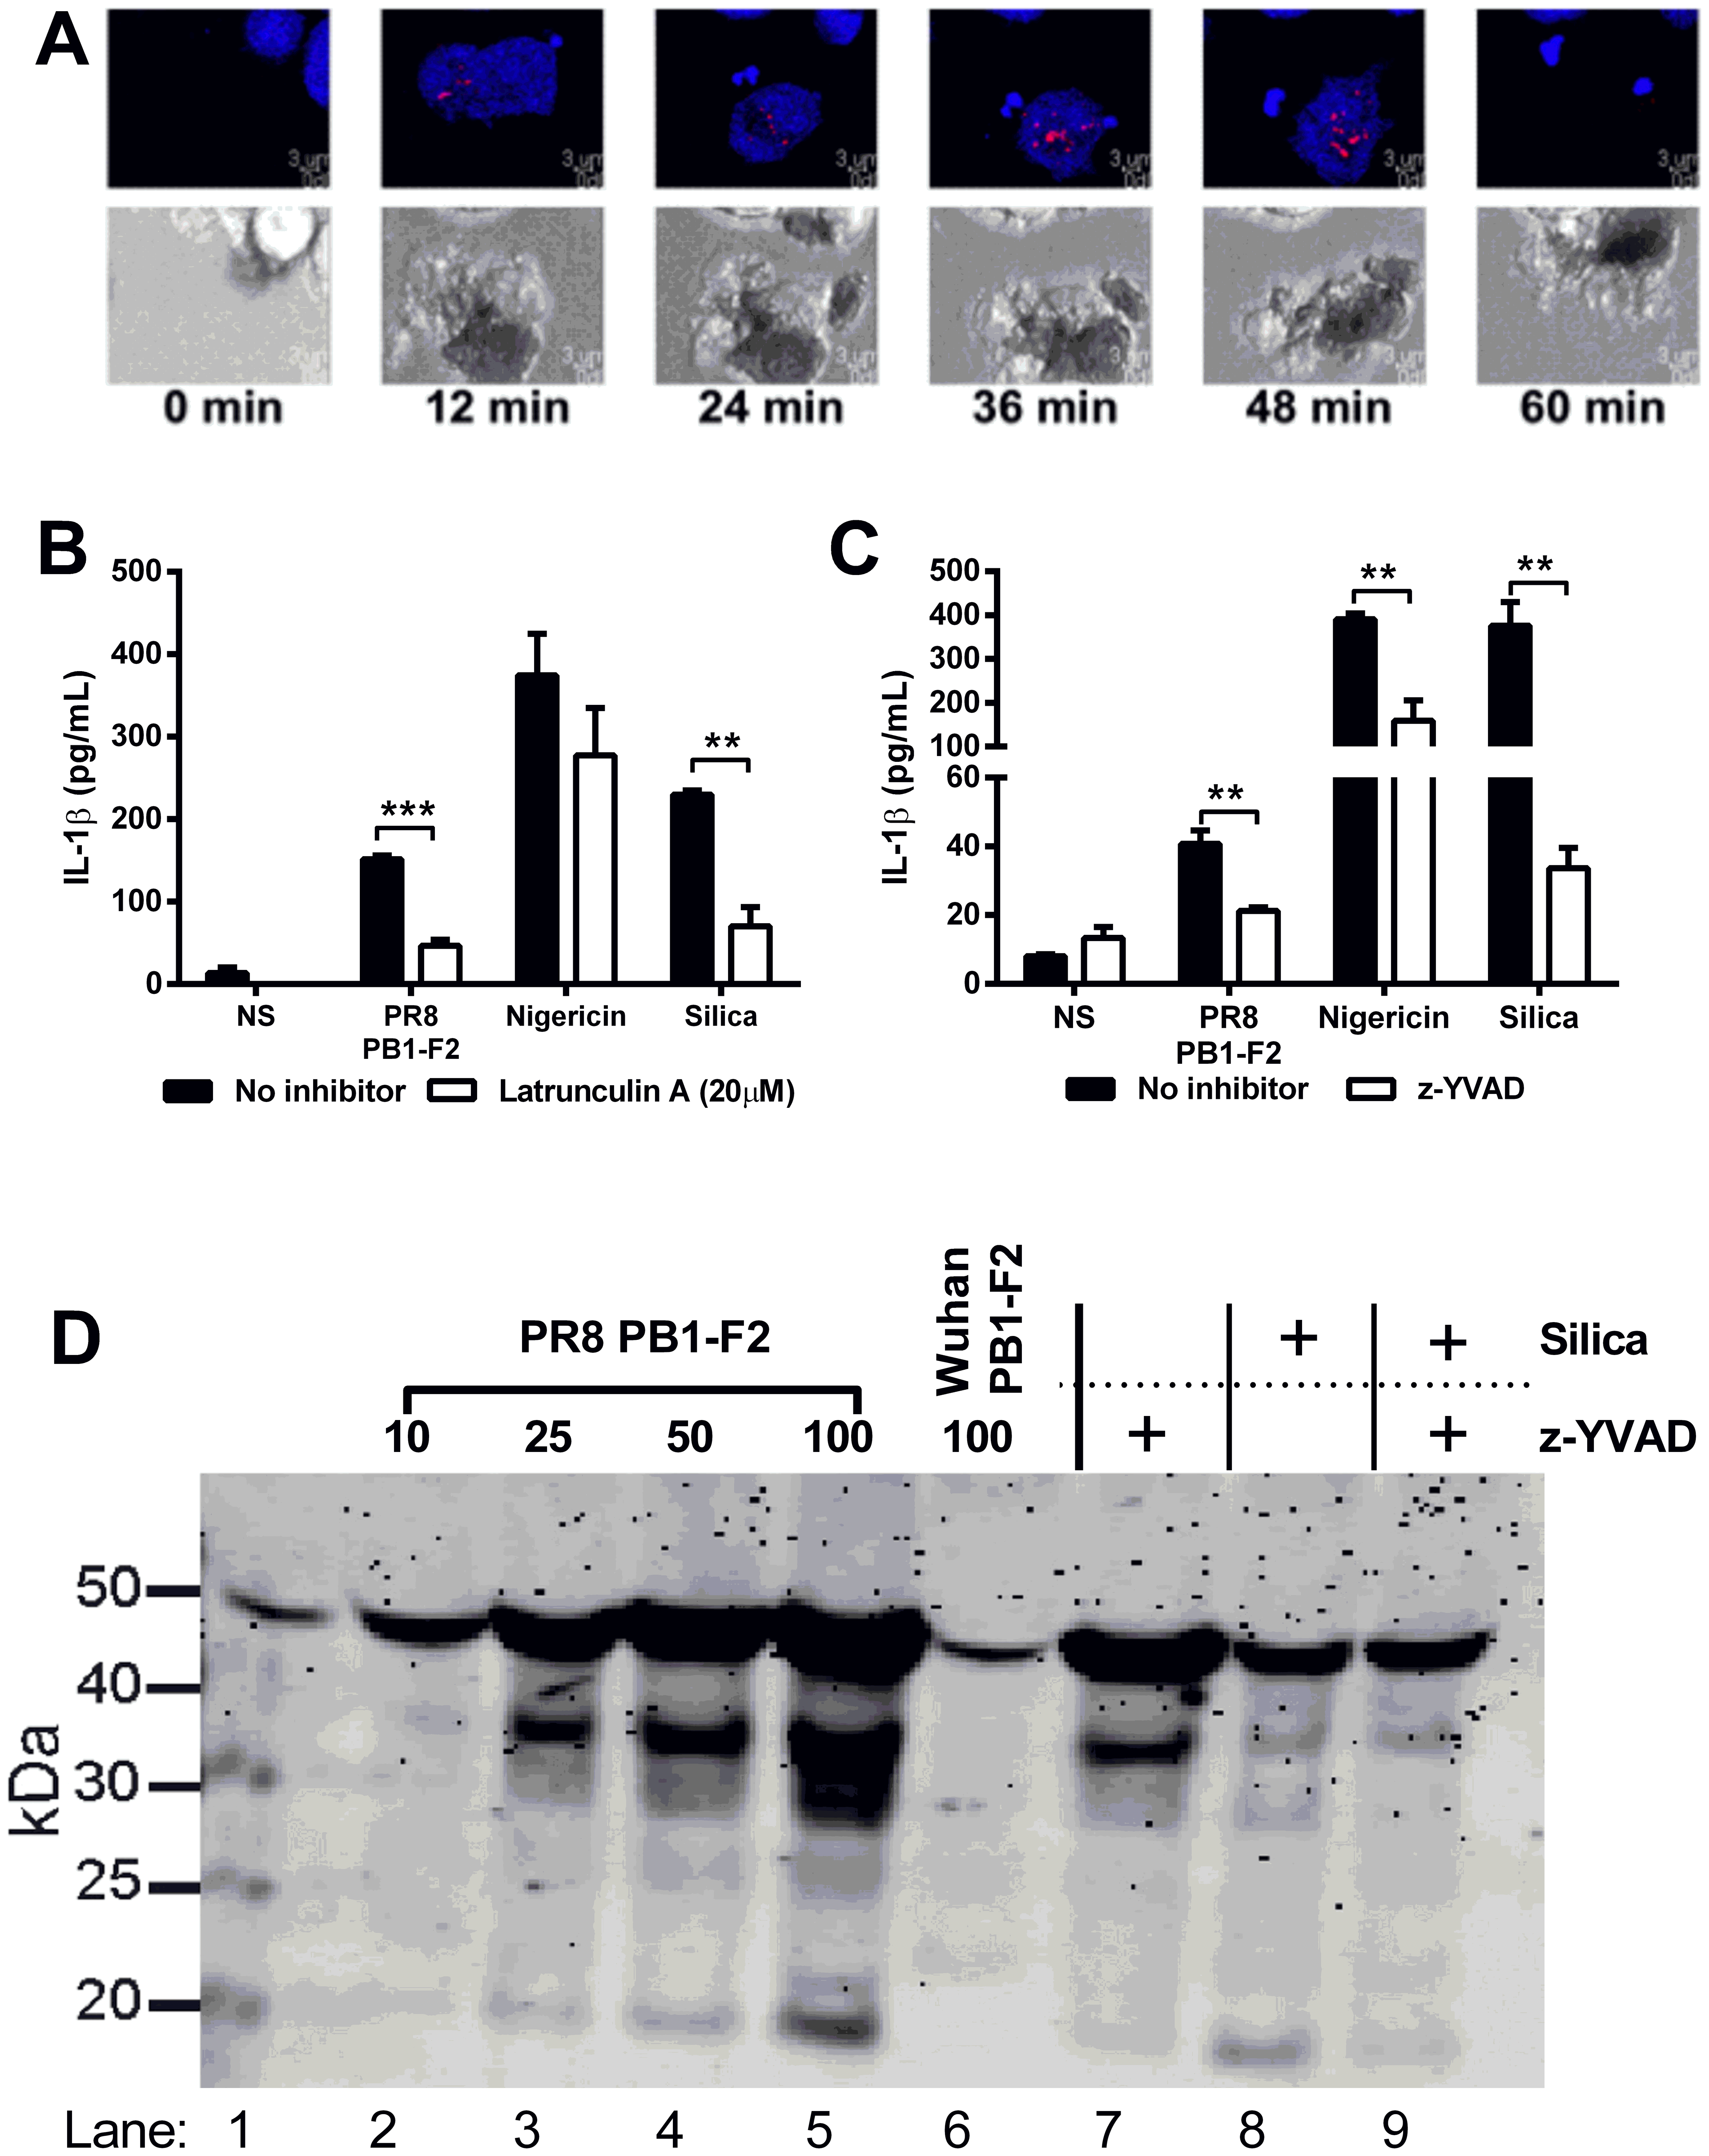 PR8 PB1-F2-mediated inflammation is NLRP3-, Caspase 1- and phagocytosis- dependent and induces ASC speck formation in macrophages.